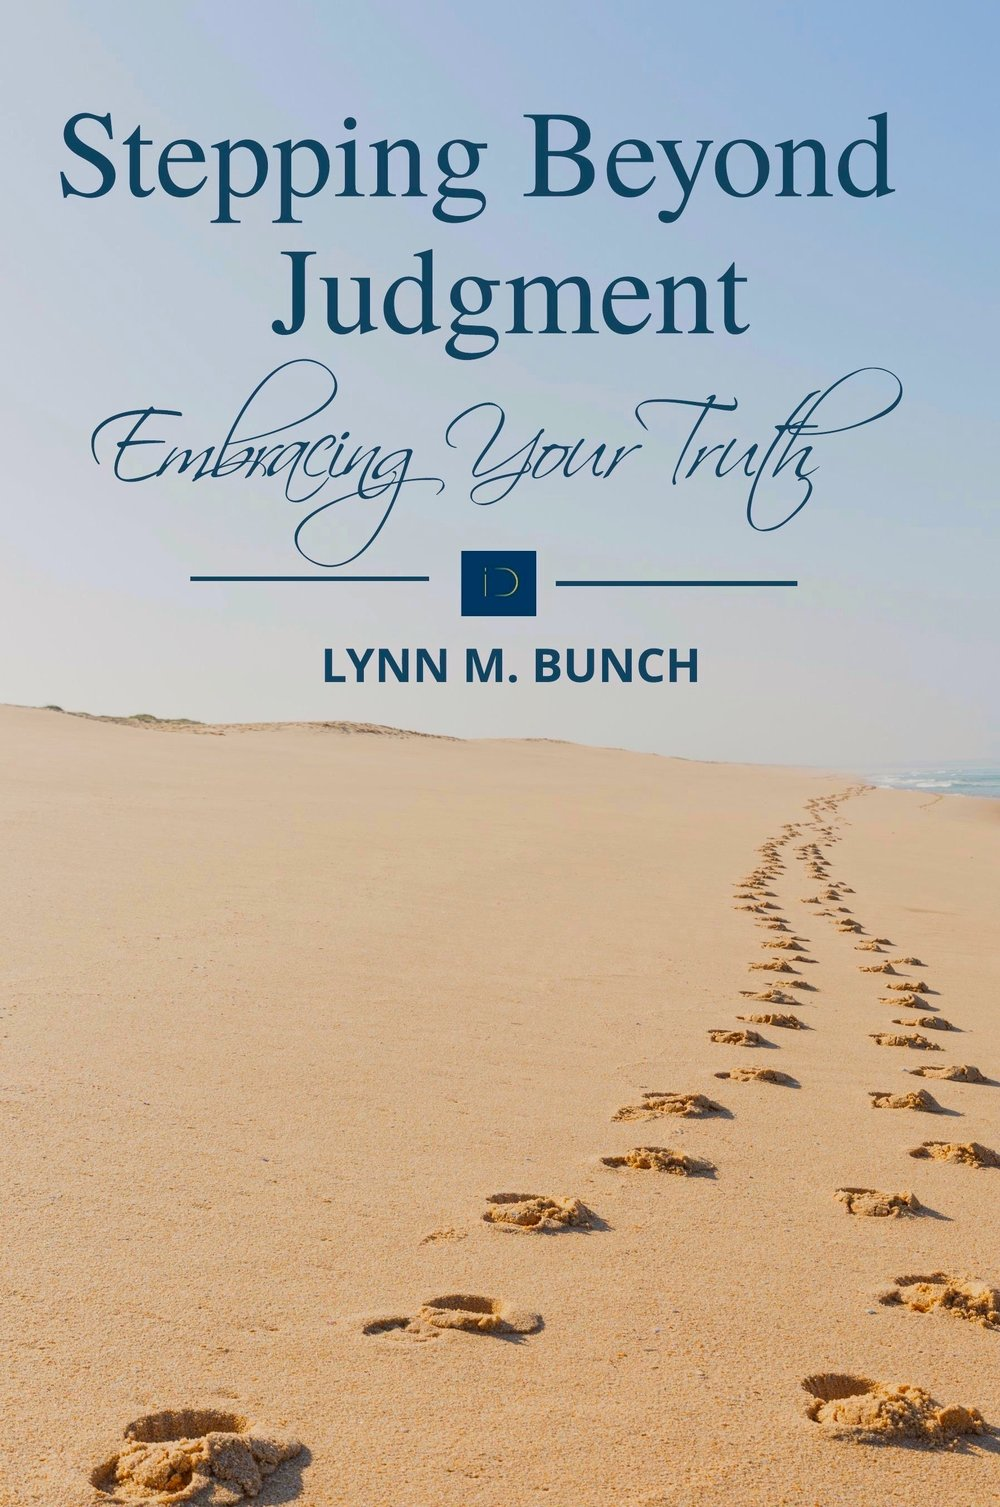 Stepping Beyond Judgment   is an intimate memoir of how to peacefully overcome the intense struggles in our lives. Through her unique and often tumultuous stories, Lynn takes the reader through the necessary steps to live a life devoid of pain, struggle and fear, in order to enjoy the peace and bliss every human desires and deserves.